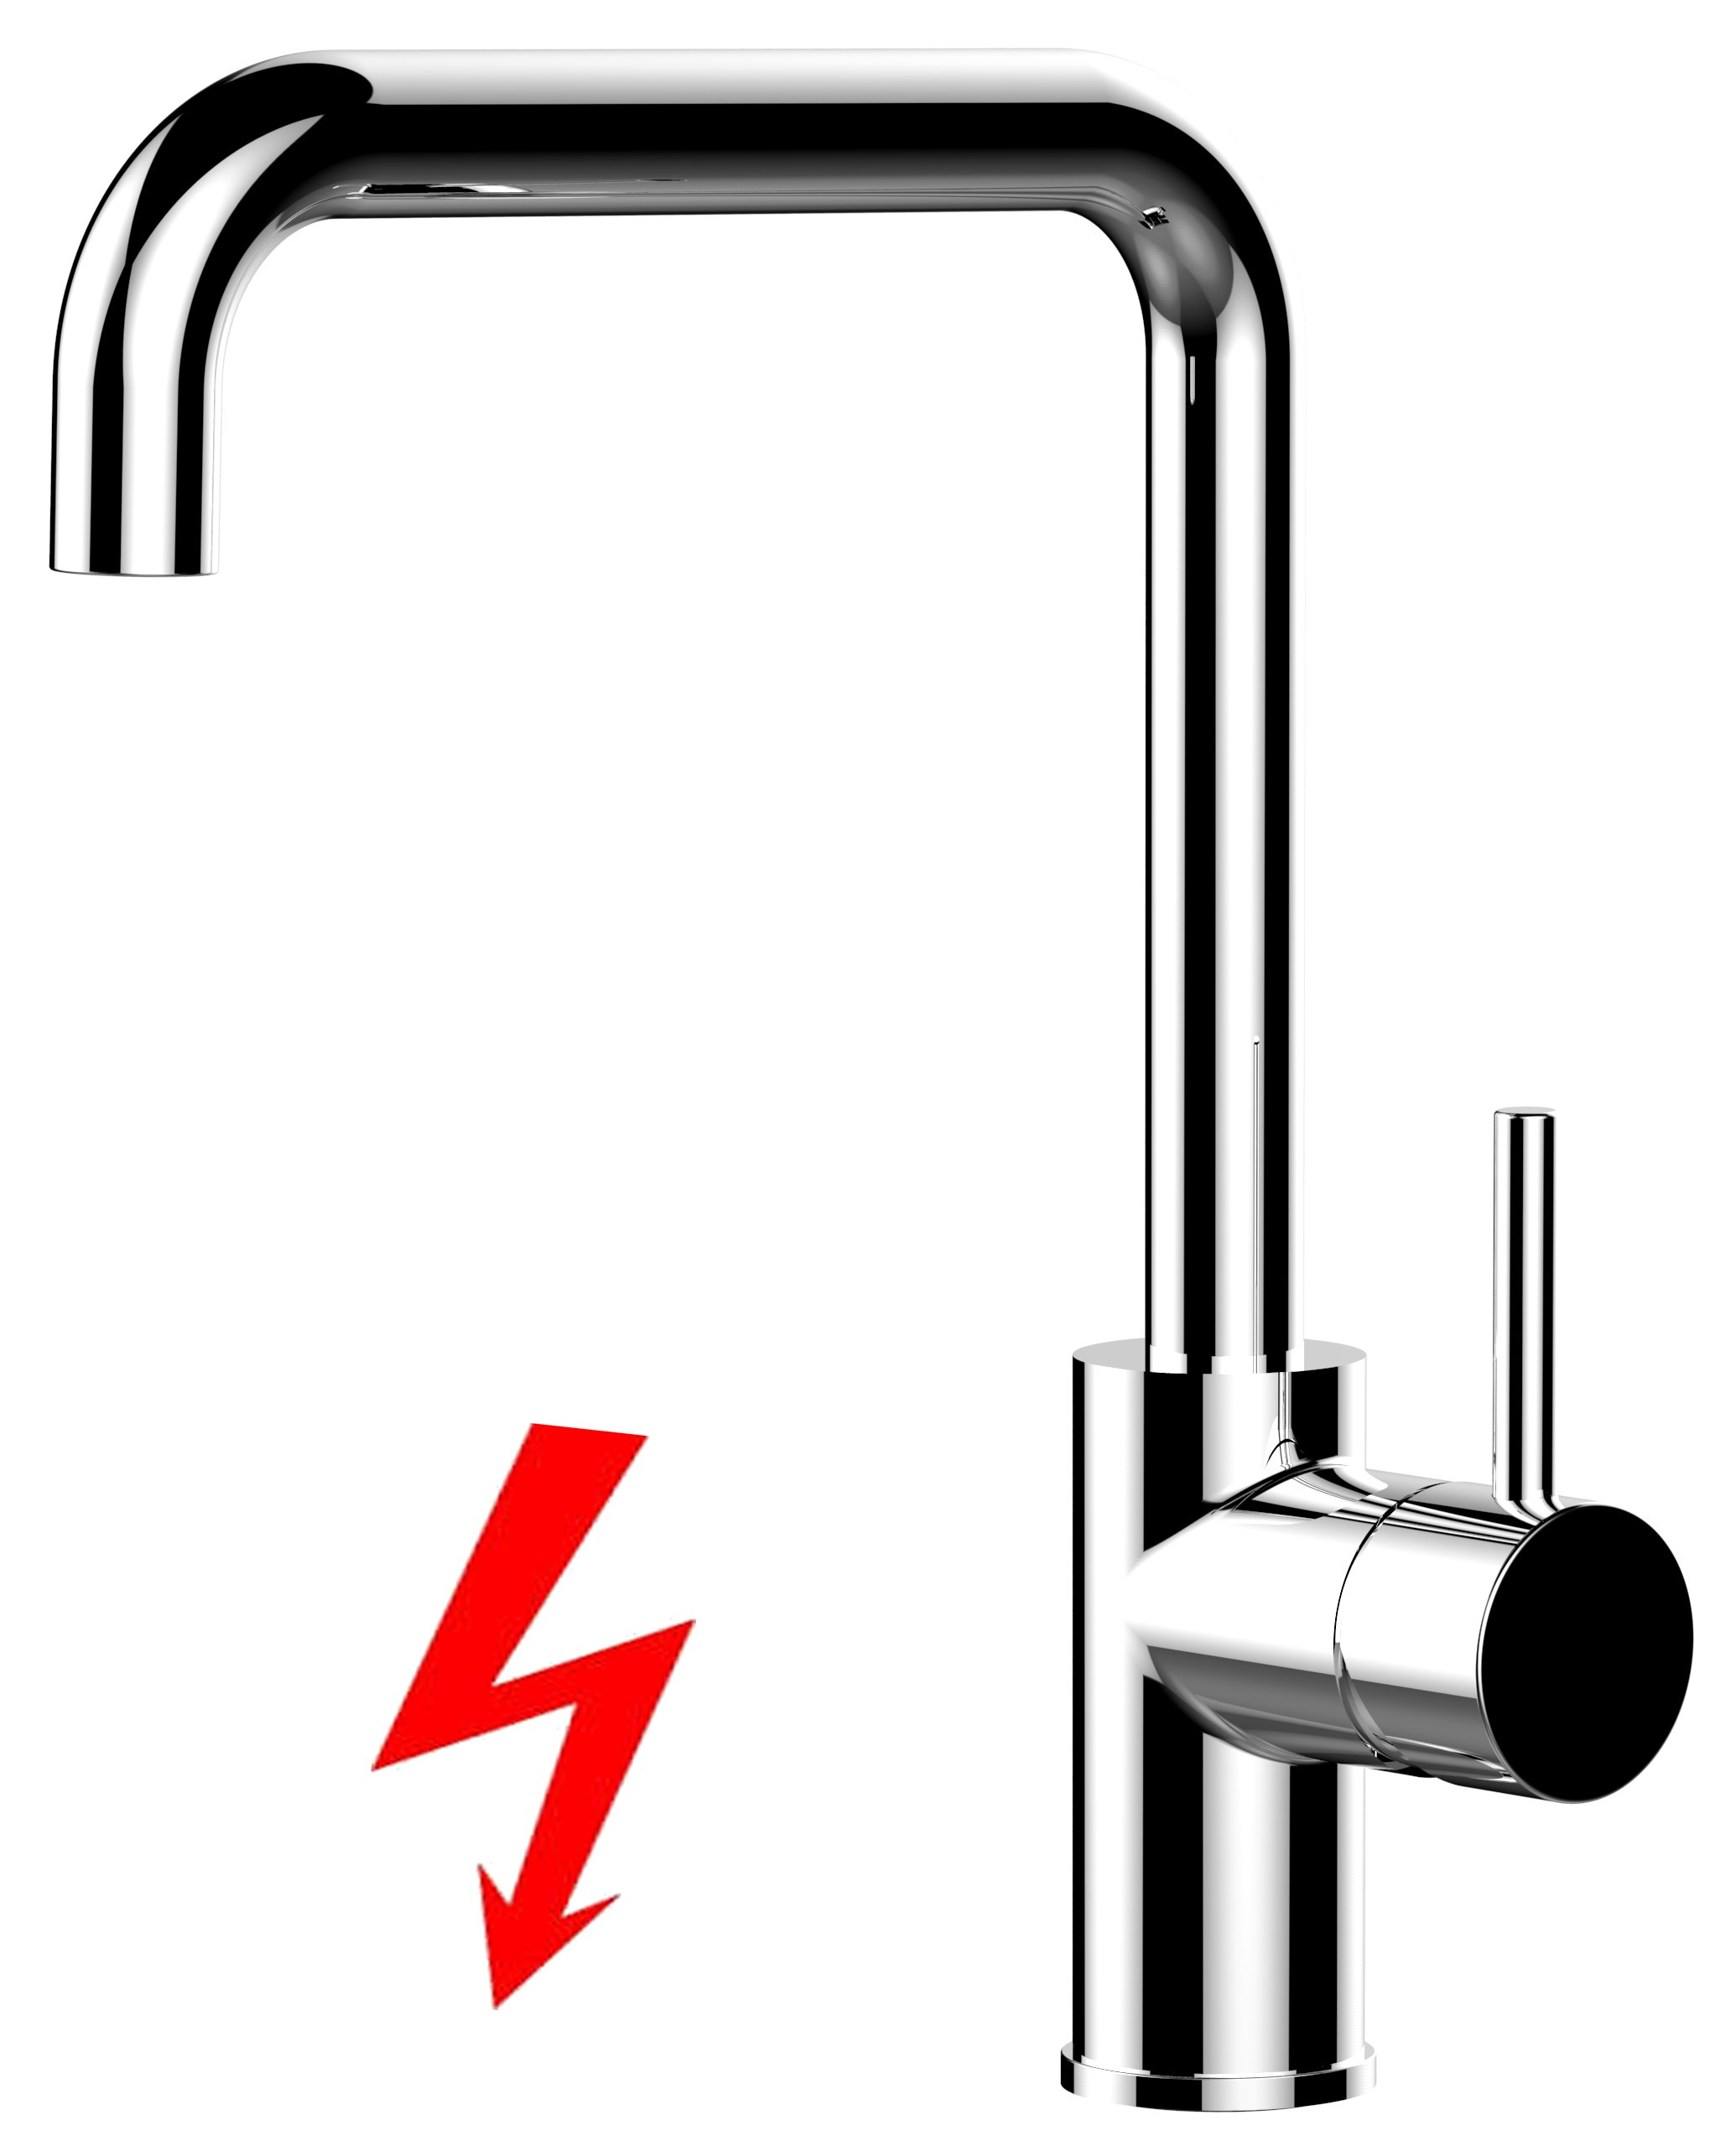 Full Size of Niederdruck Armatur Küche Grohe Niederdruck Armatur Küche Mit Spülmaschinenanschluss Niederdruck Armatur Küche Anthrazit Niederdruck Armatur Küche Ausziehbar Küche Niederdruck Armatur Küche